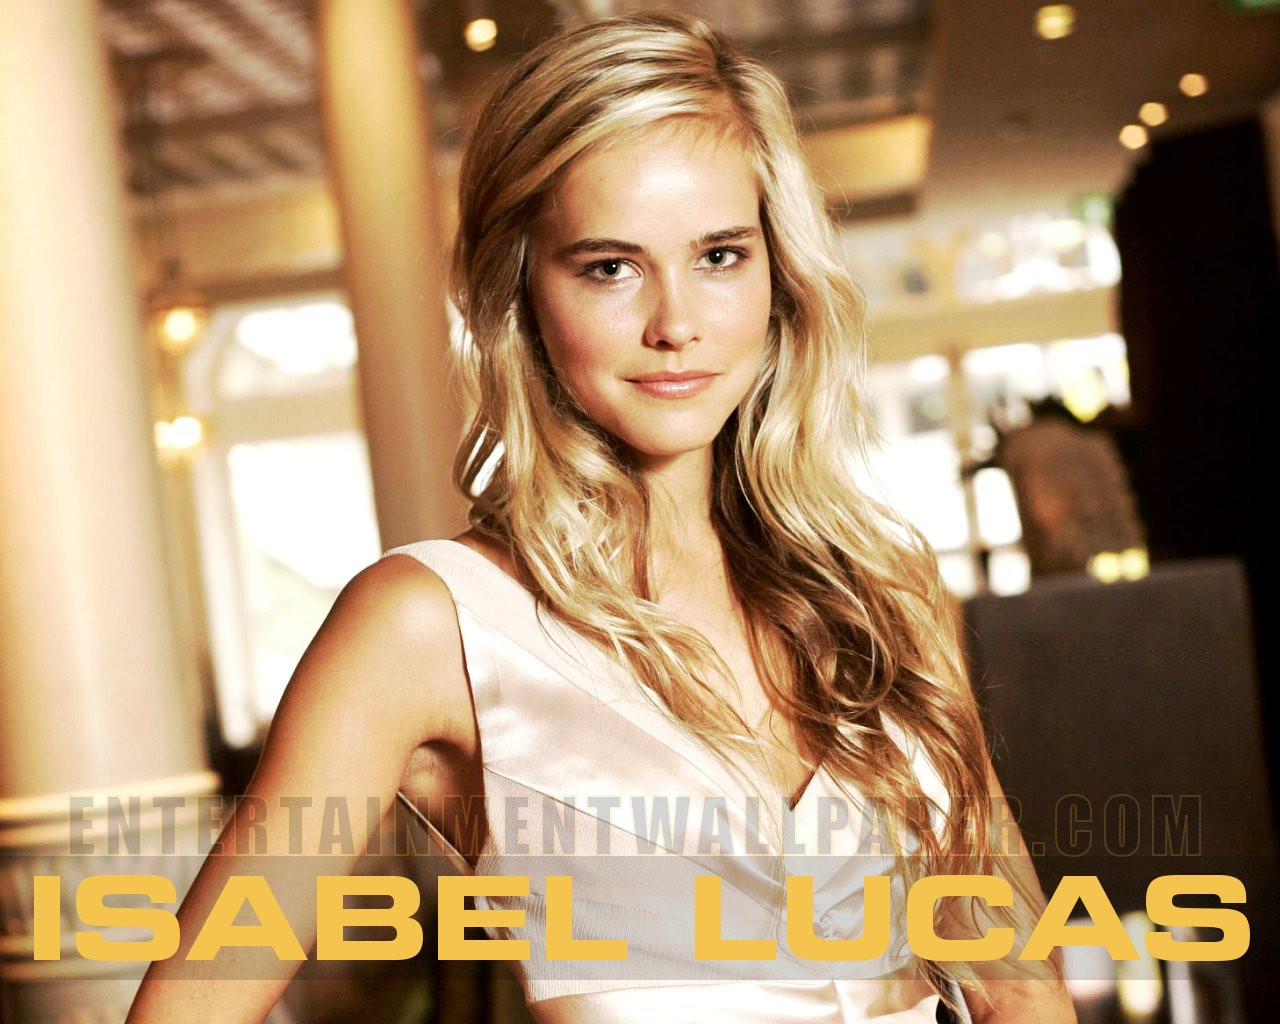 Isabel   Isabel Lucas Wallpaper 31607305 1280x1024